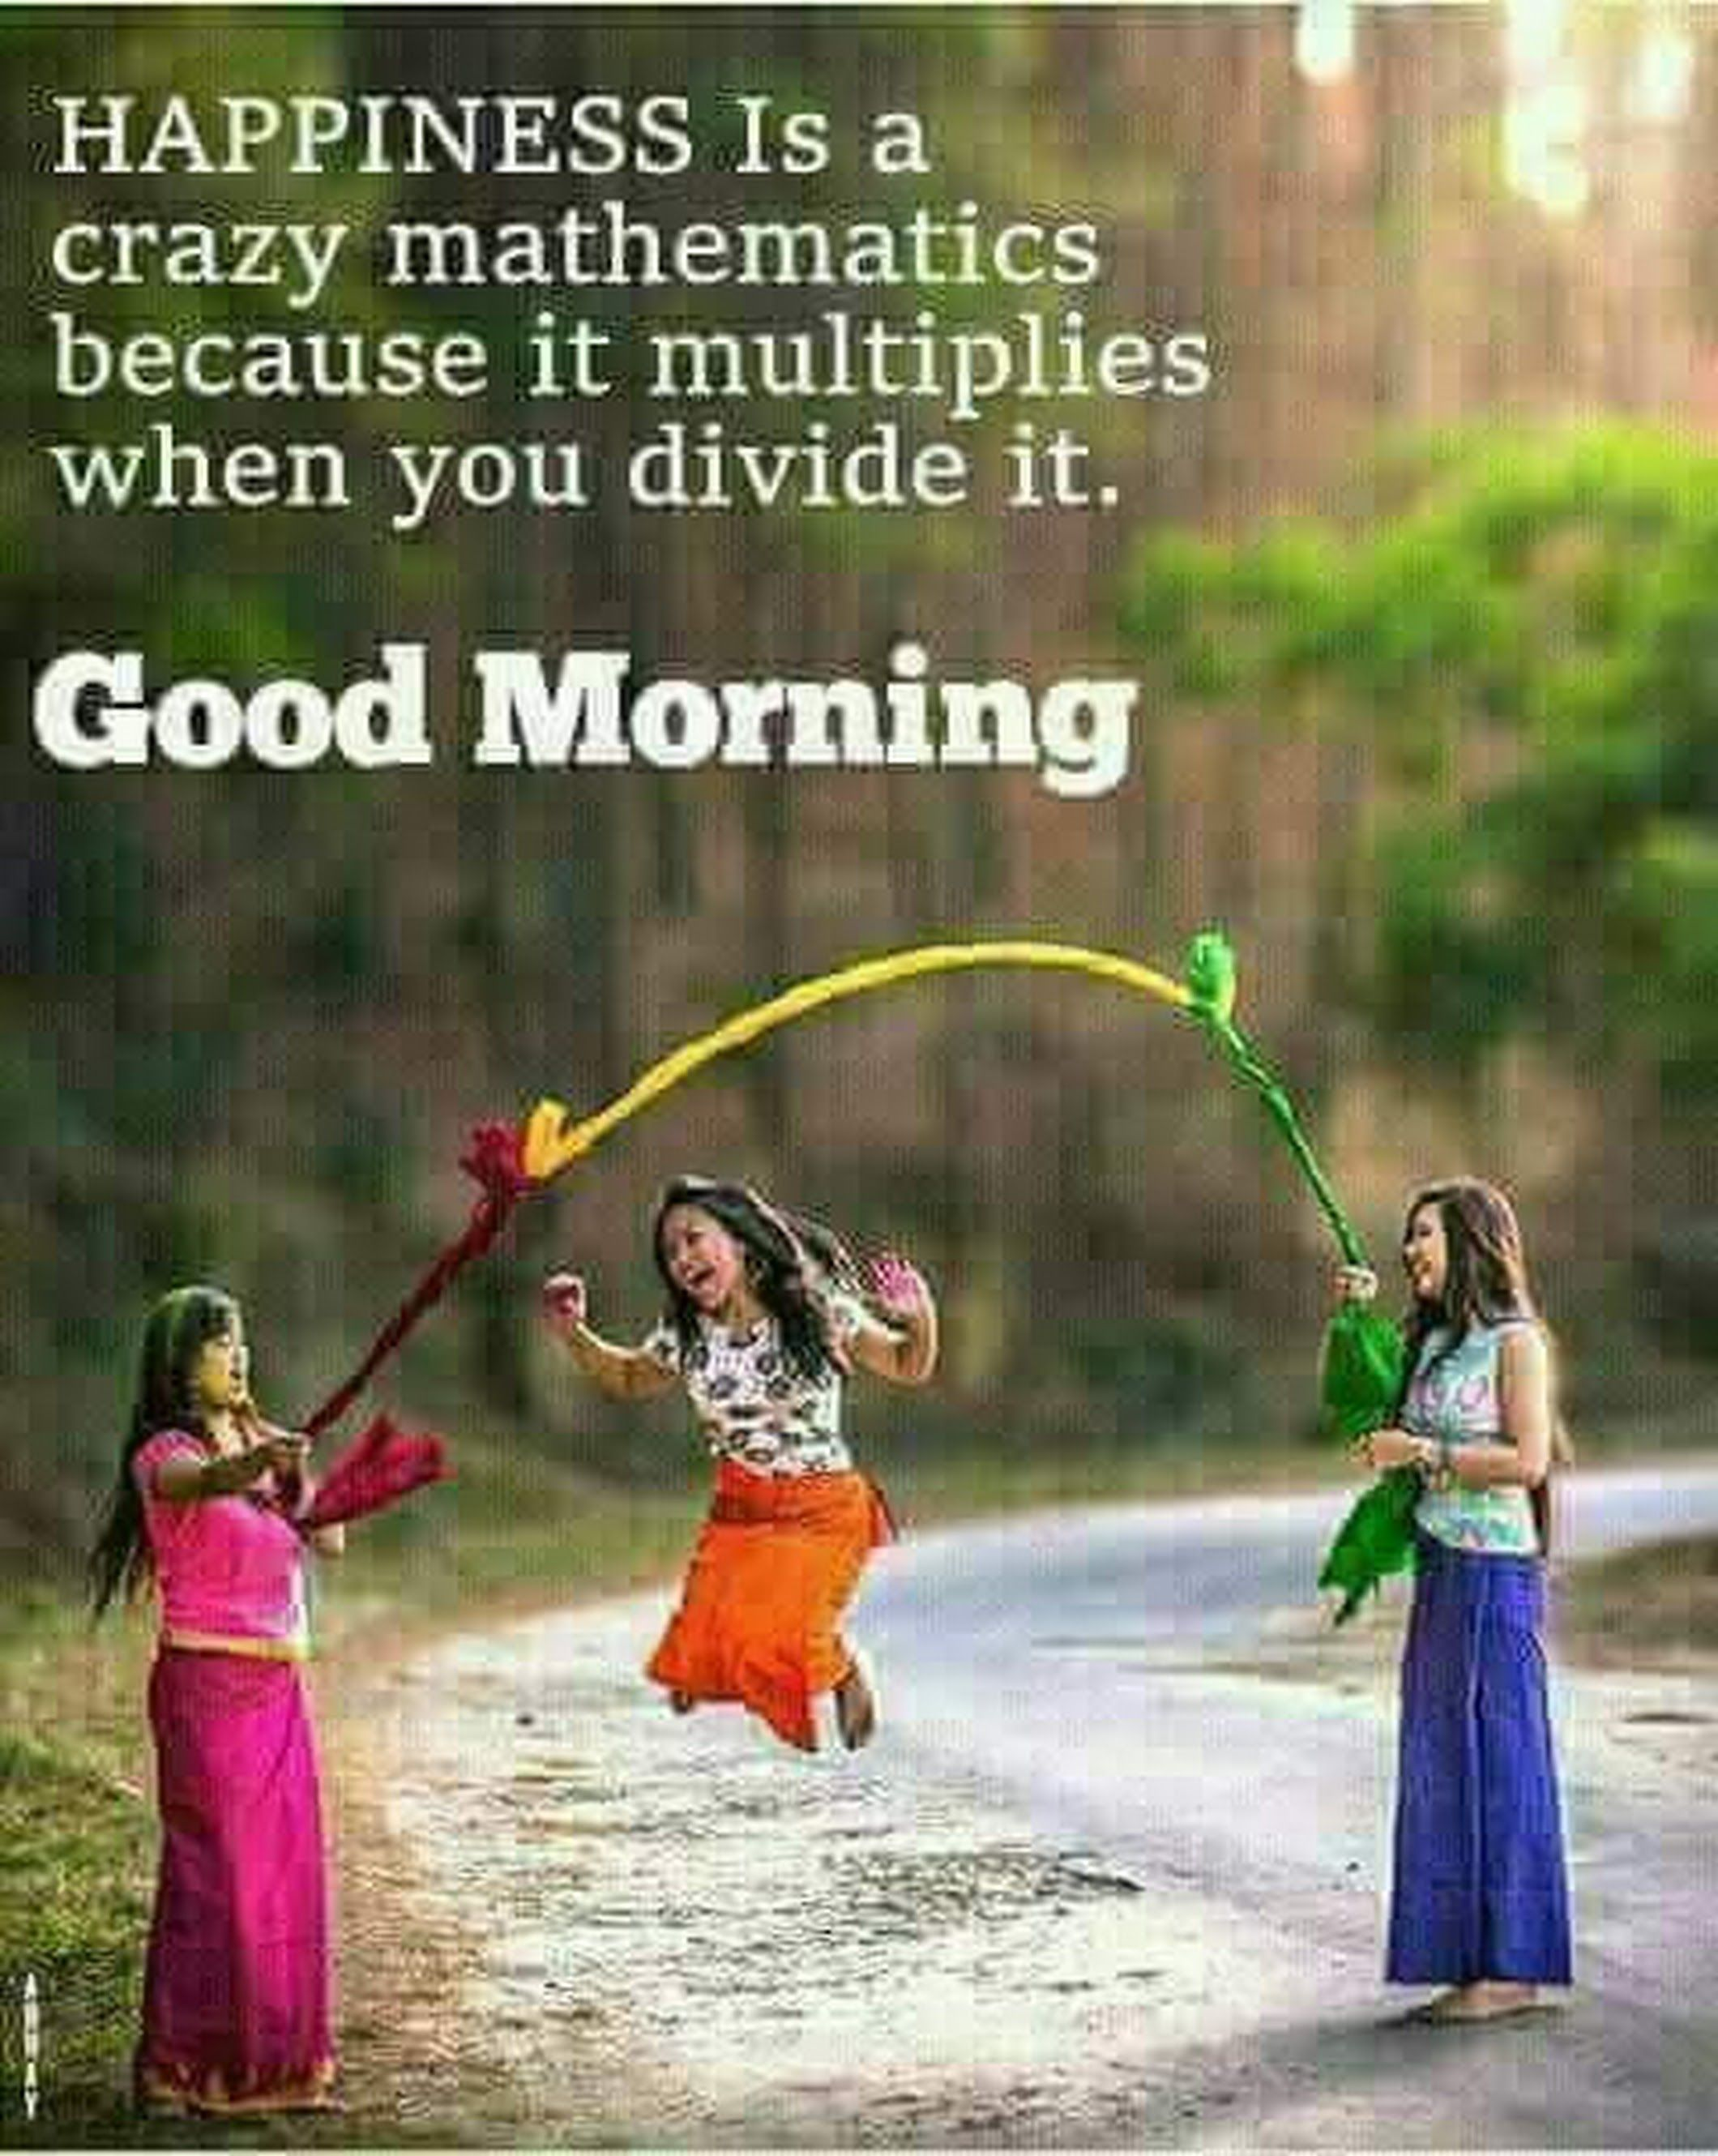 Image Result For Good Morning Gifs For Her Good Morning Meme Good Morning Wishes Friends Good Morning Beautiful Images